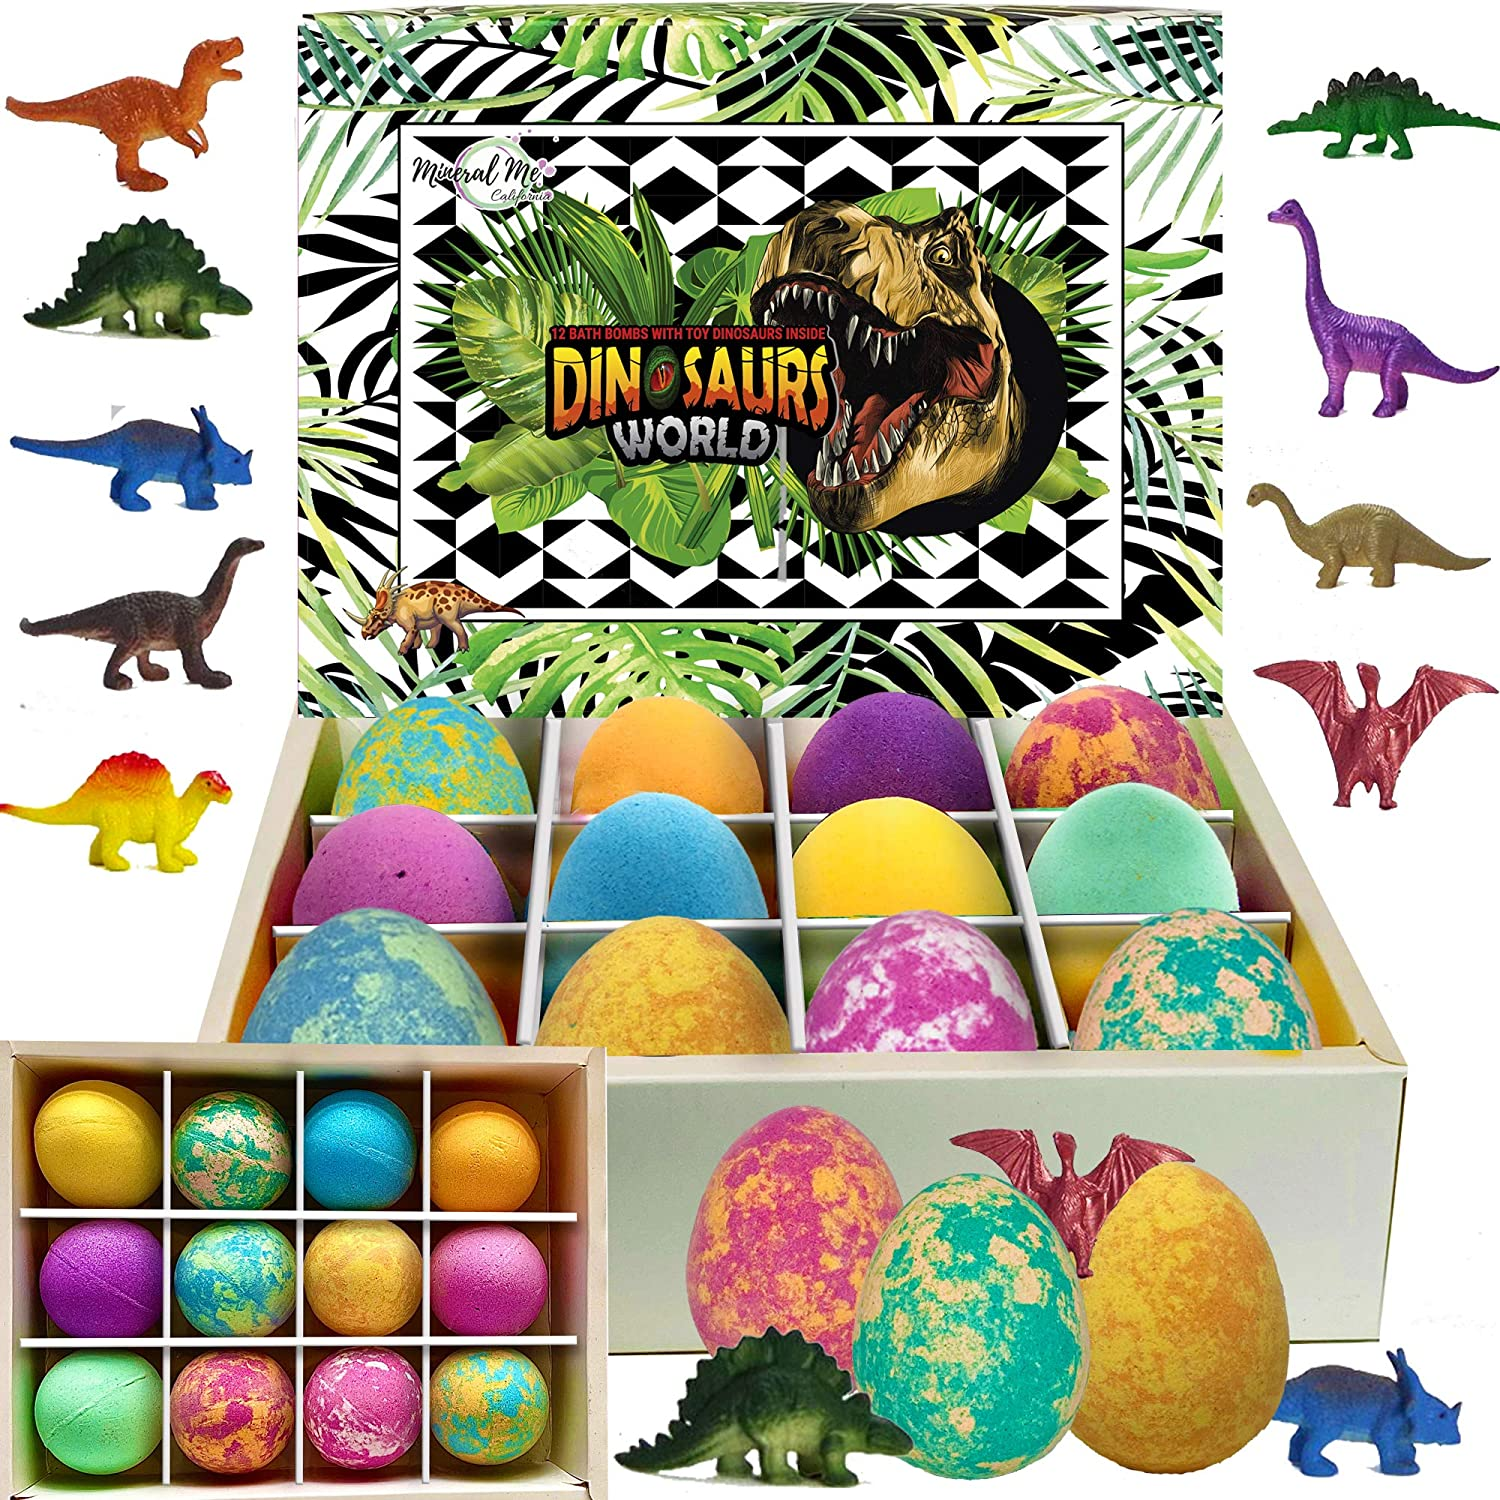 Bath Bombs for Kids with Toys Inside - Set of 12 Colorful Egg Bath Fizzies with Dinosaur Surprise. Gentle and Kids Safe Spa Bath Fizz Balls Kit. Birthday or Easter Gift for Girls and Boys: Health & Personal Care